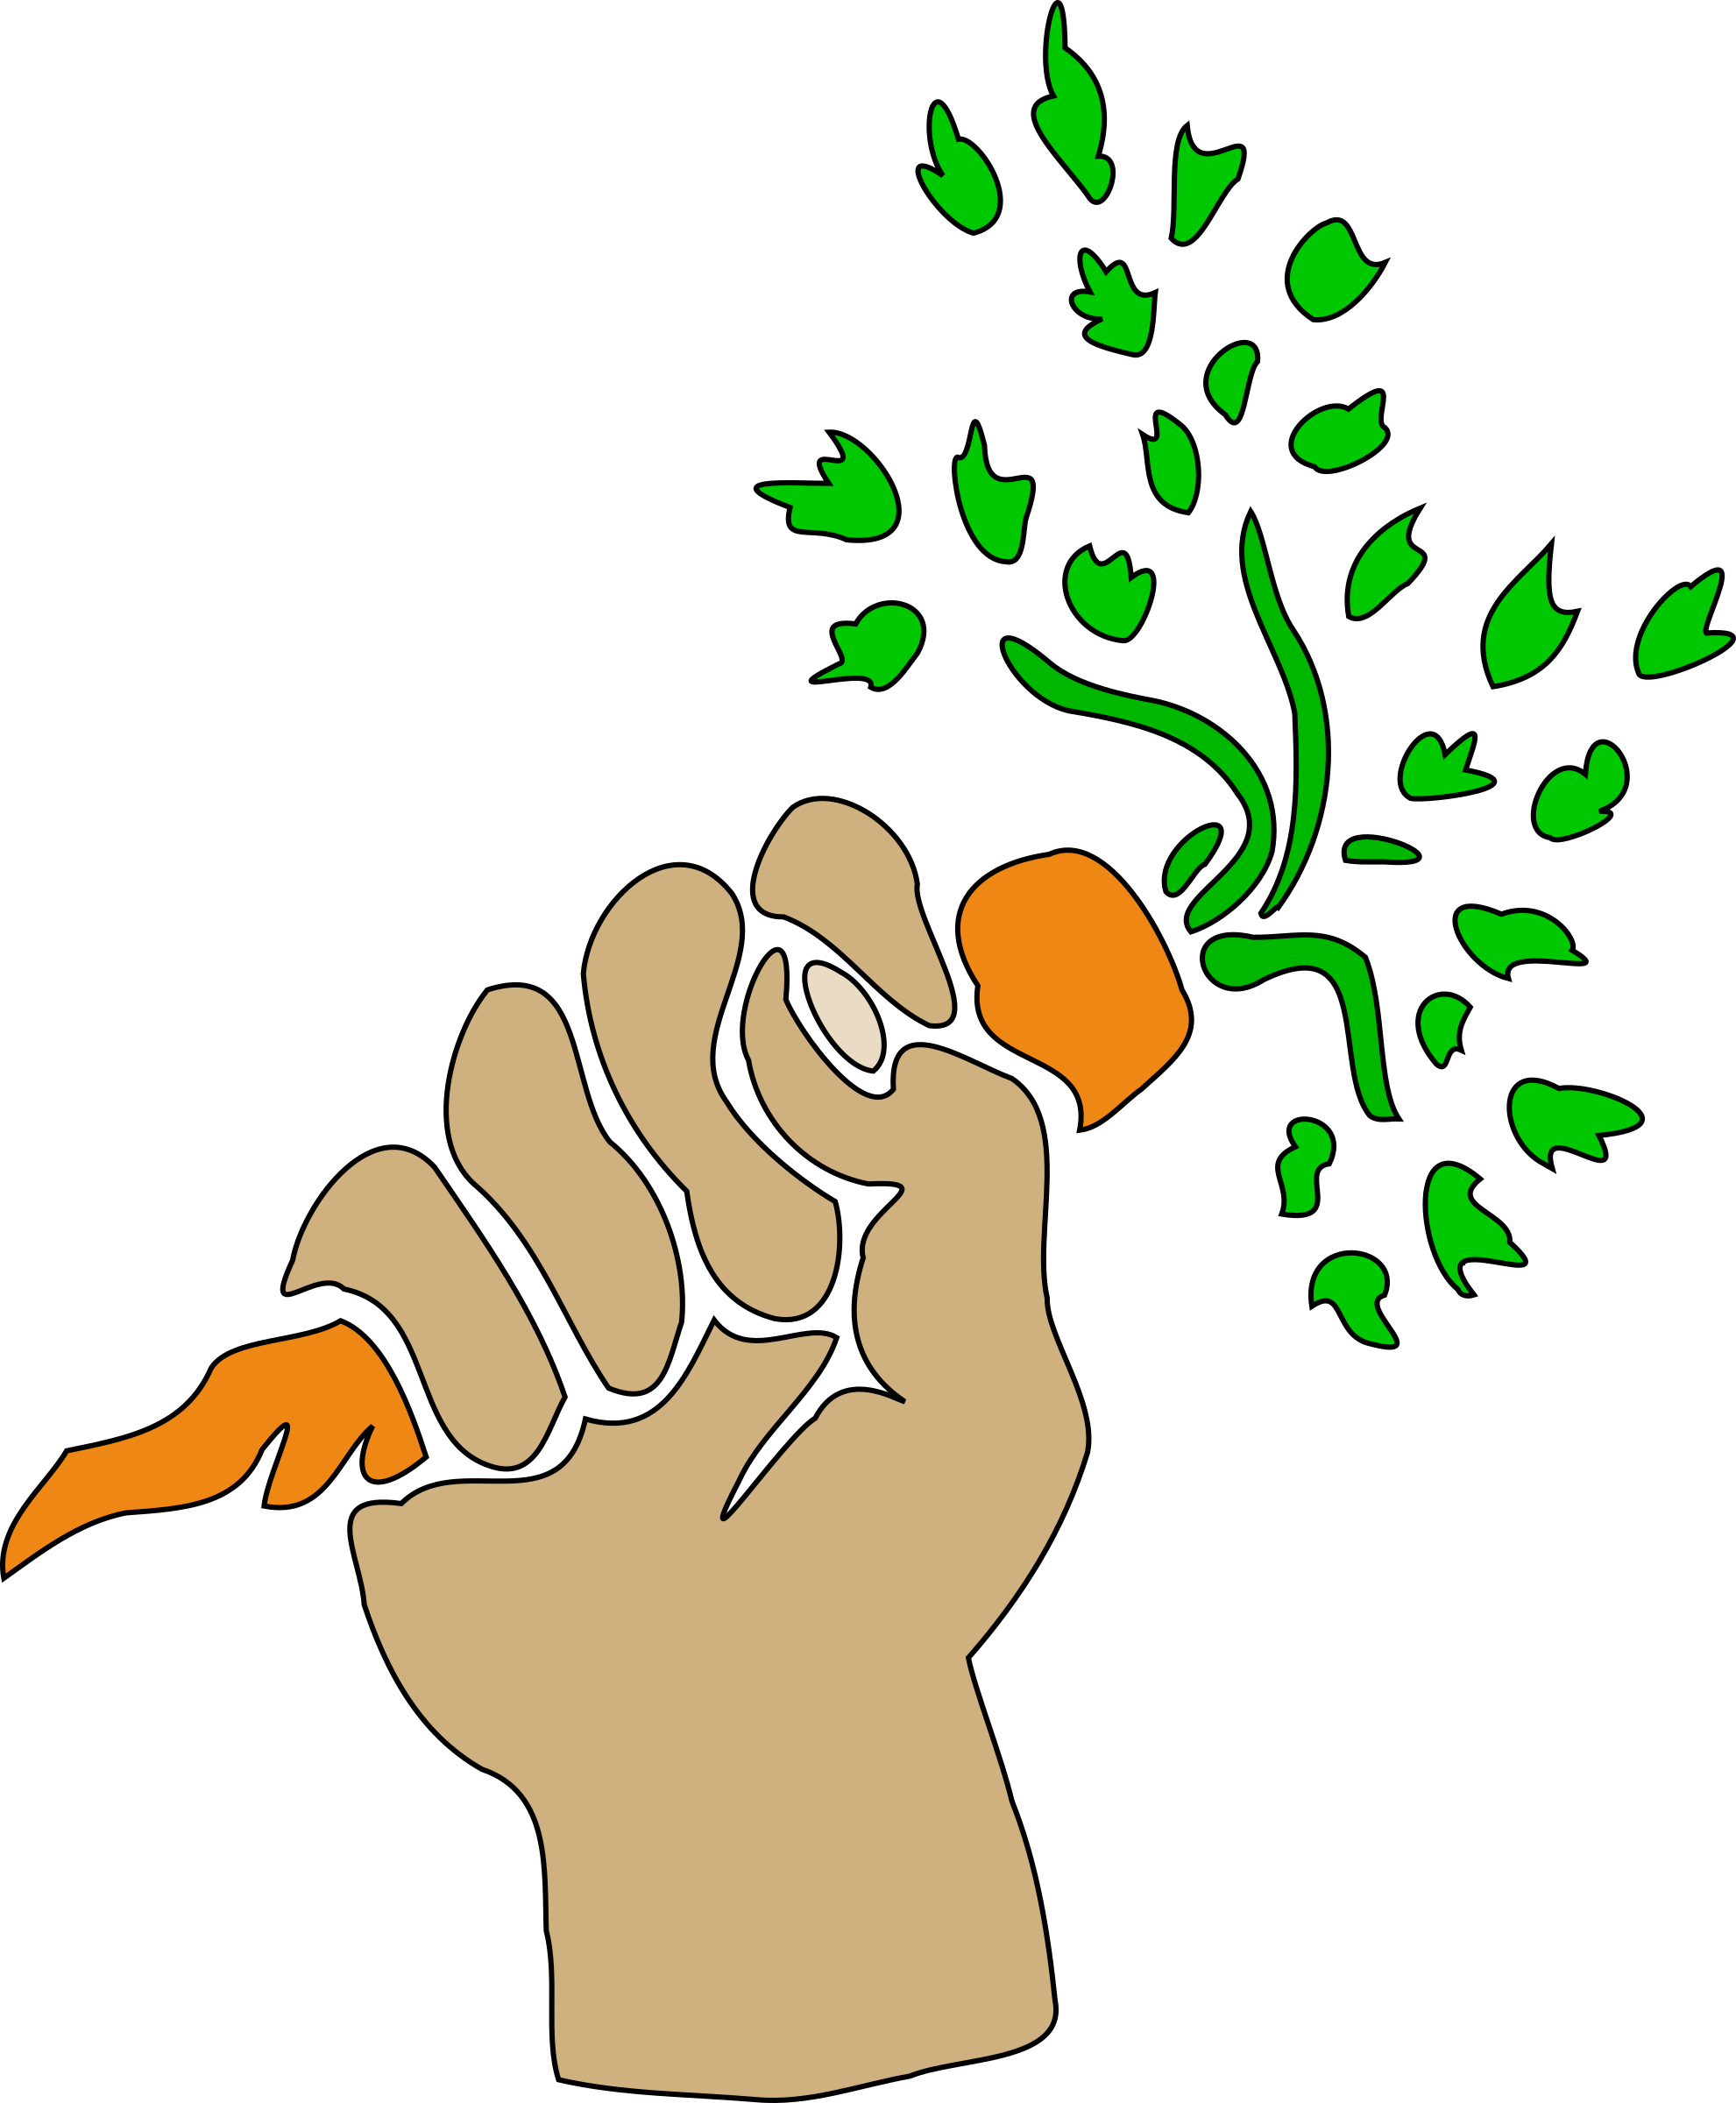 Holding carrot big image. Hand clipart plant